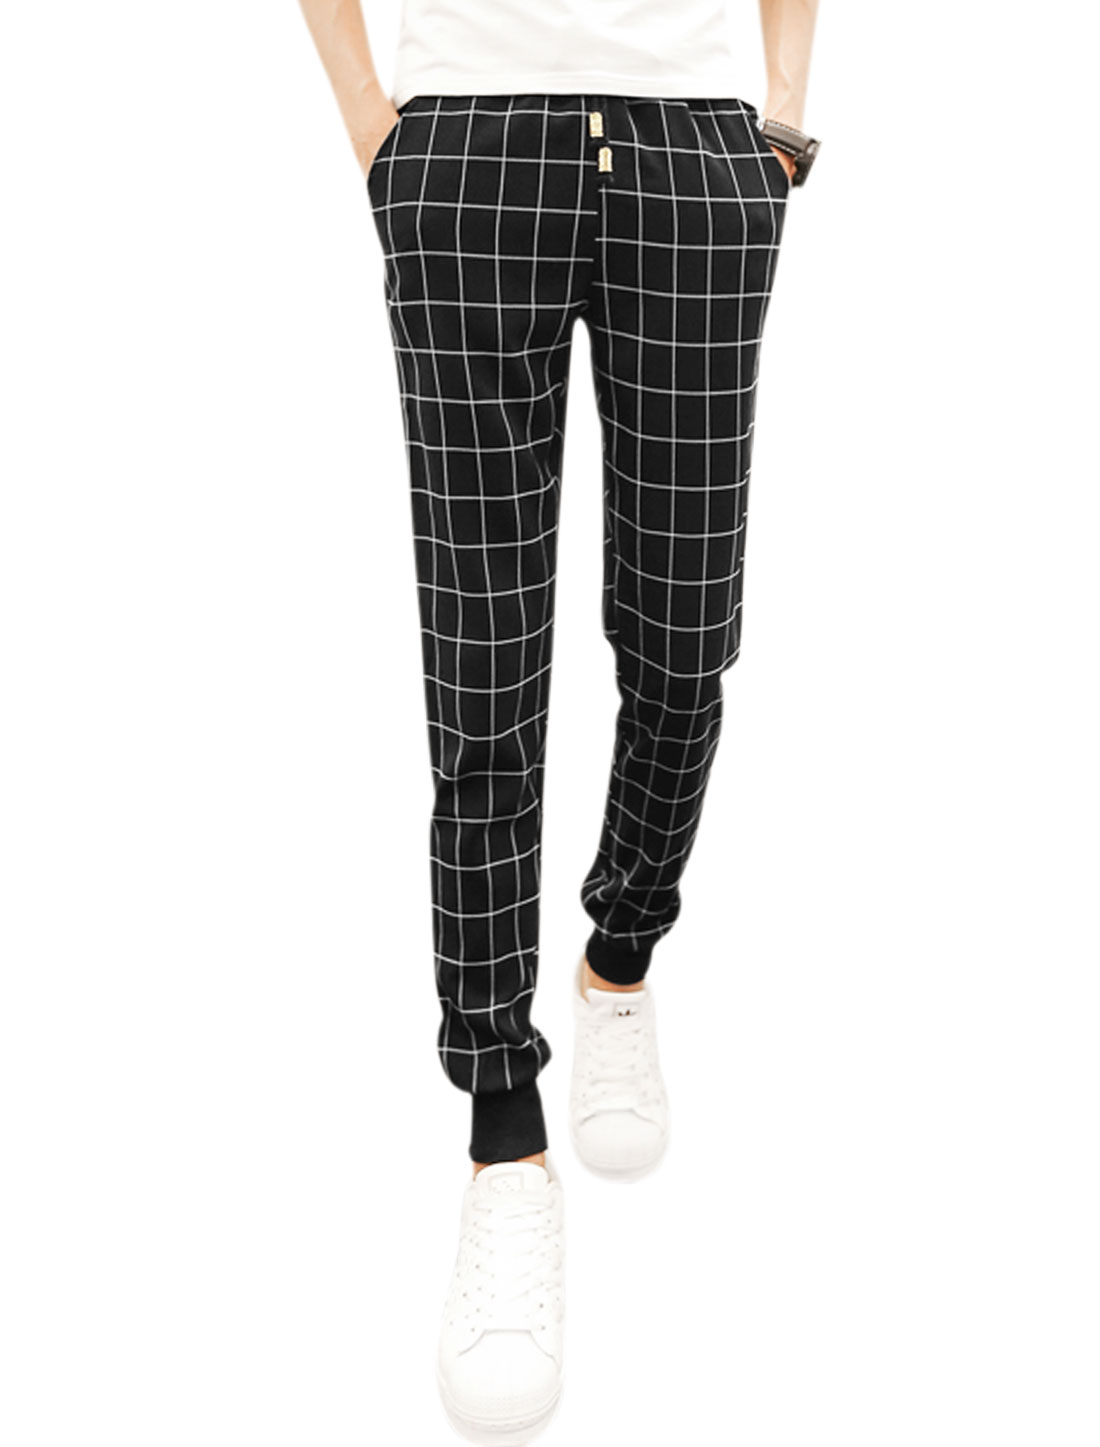 Men Drawstring Waist Pockets Front Plaids Tapered Pants Black W32